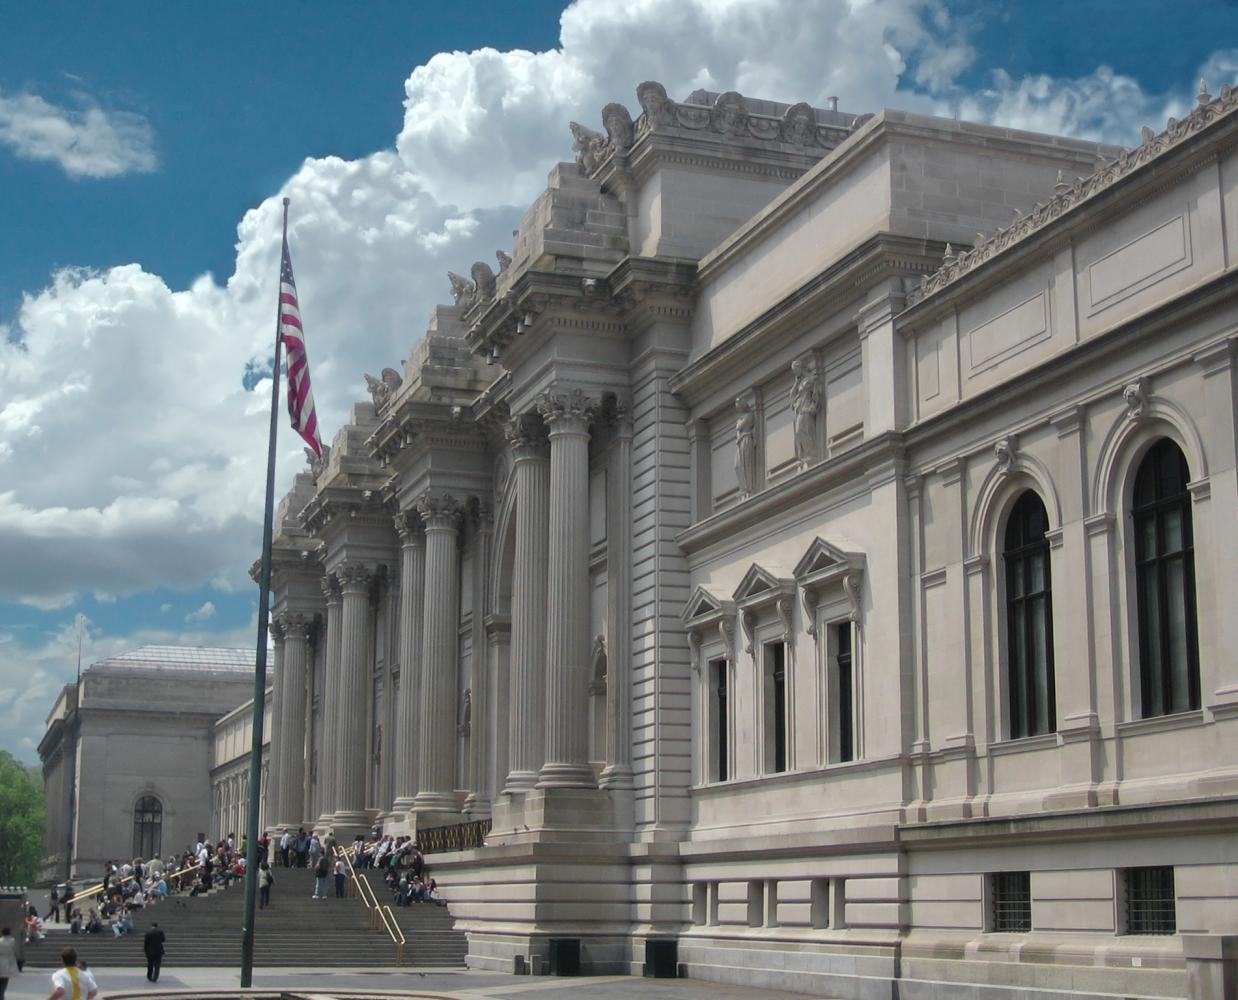 The Met is one of the world's largest art museums and is home to over 2 million works.